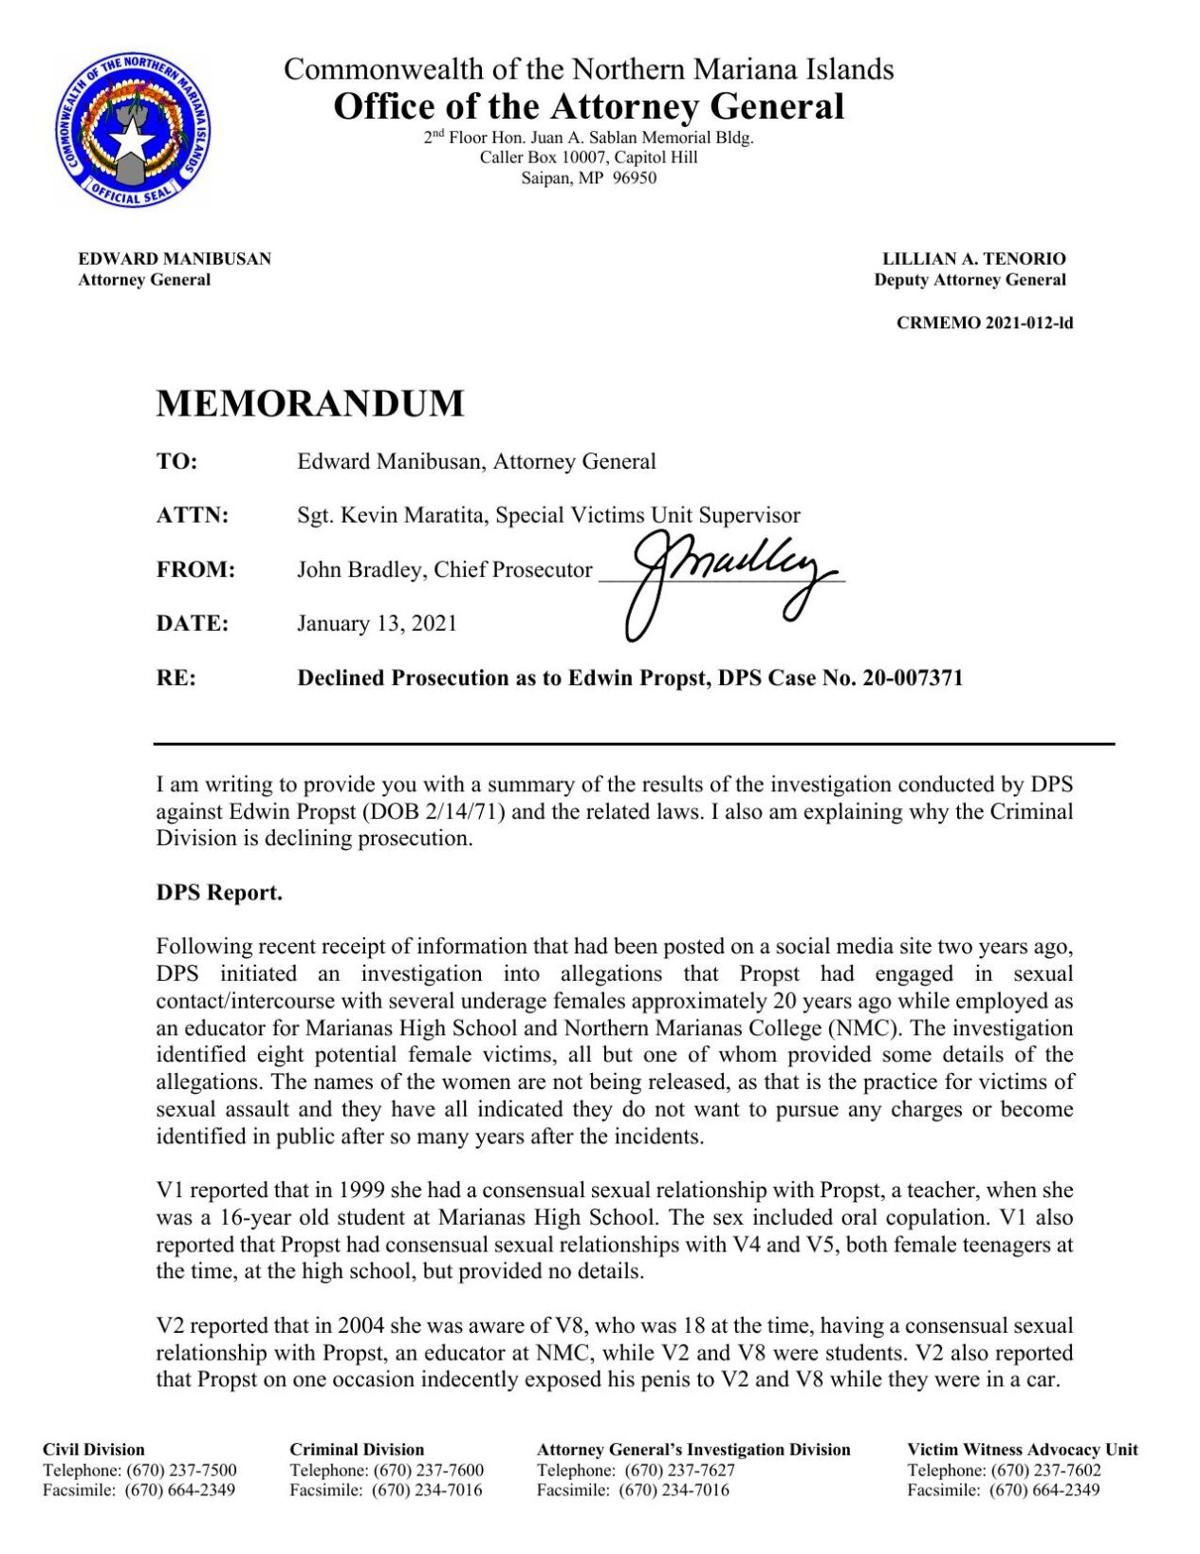 Office of the AG's memo re Edwin Propst